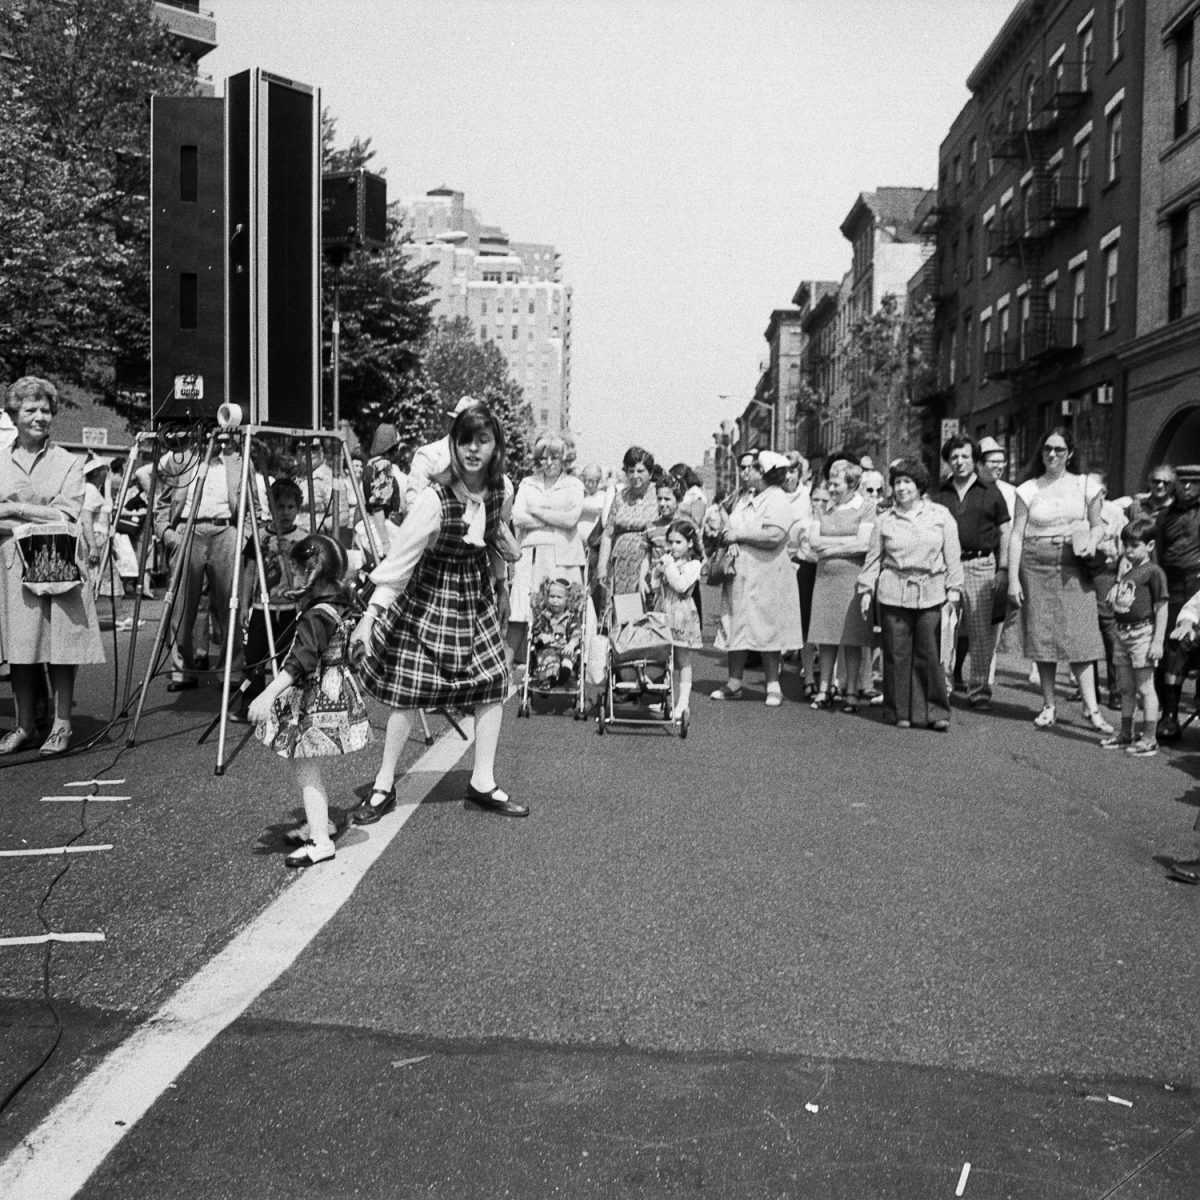 Girl Crosses The Line at Lower East Side Street Festival in NY, NY June 1978